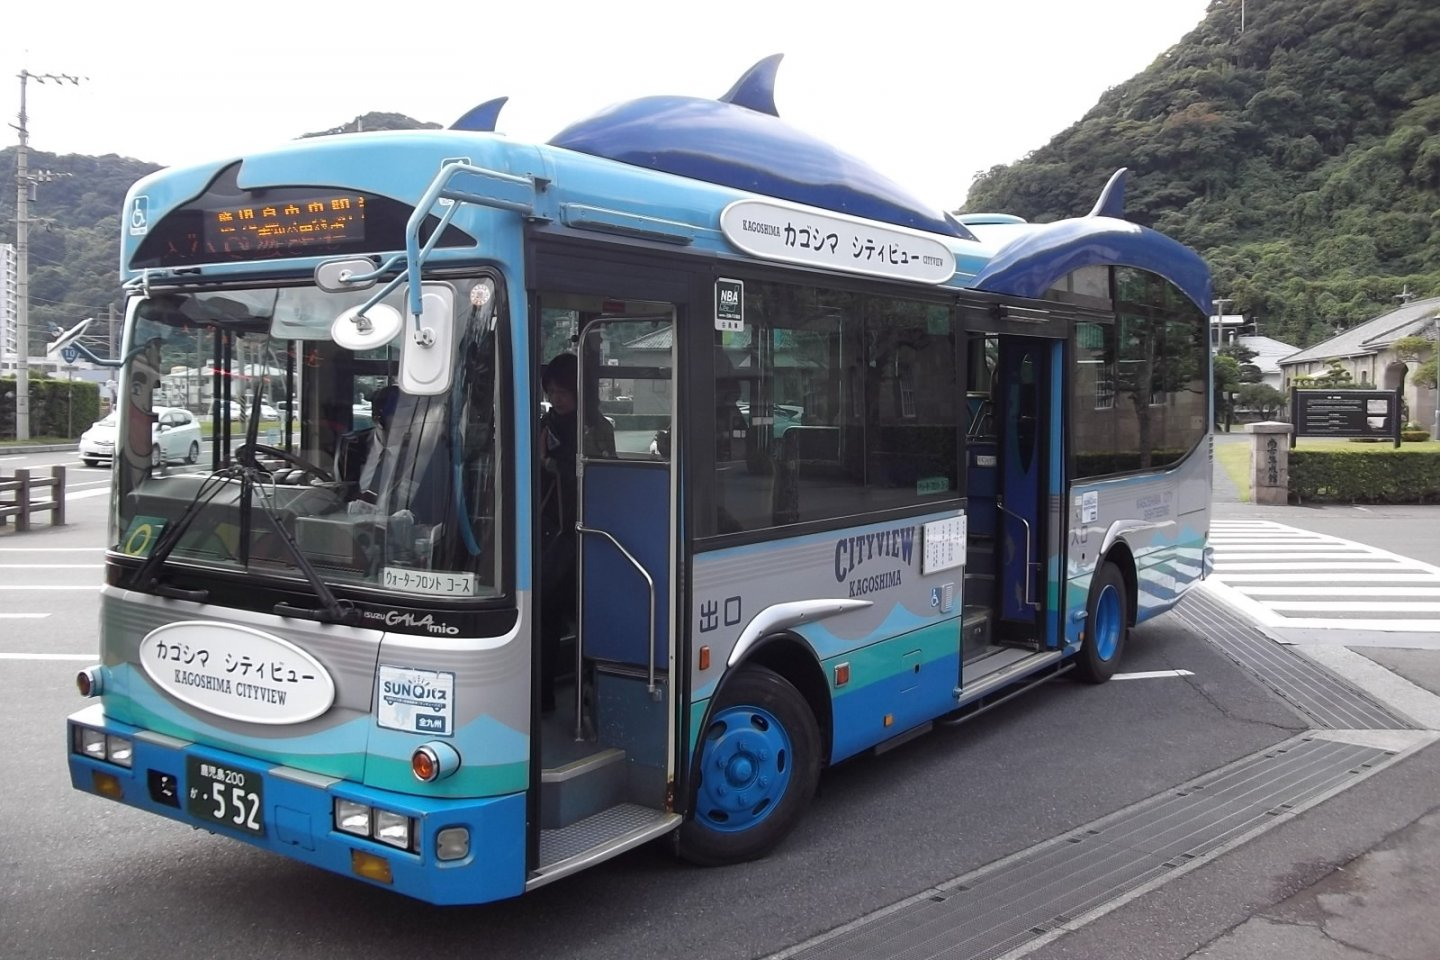 The Waterfront bus